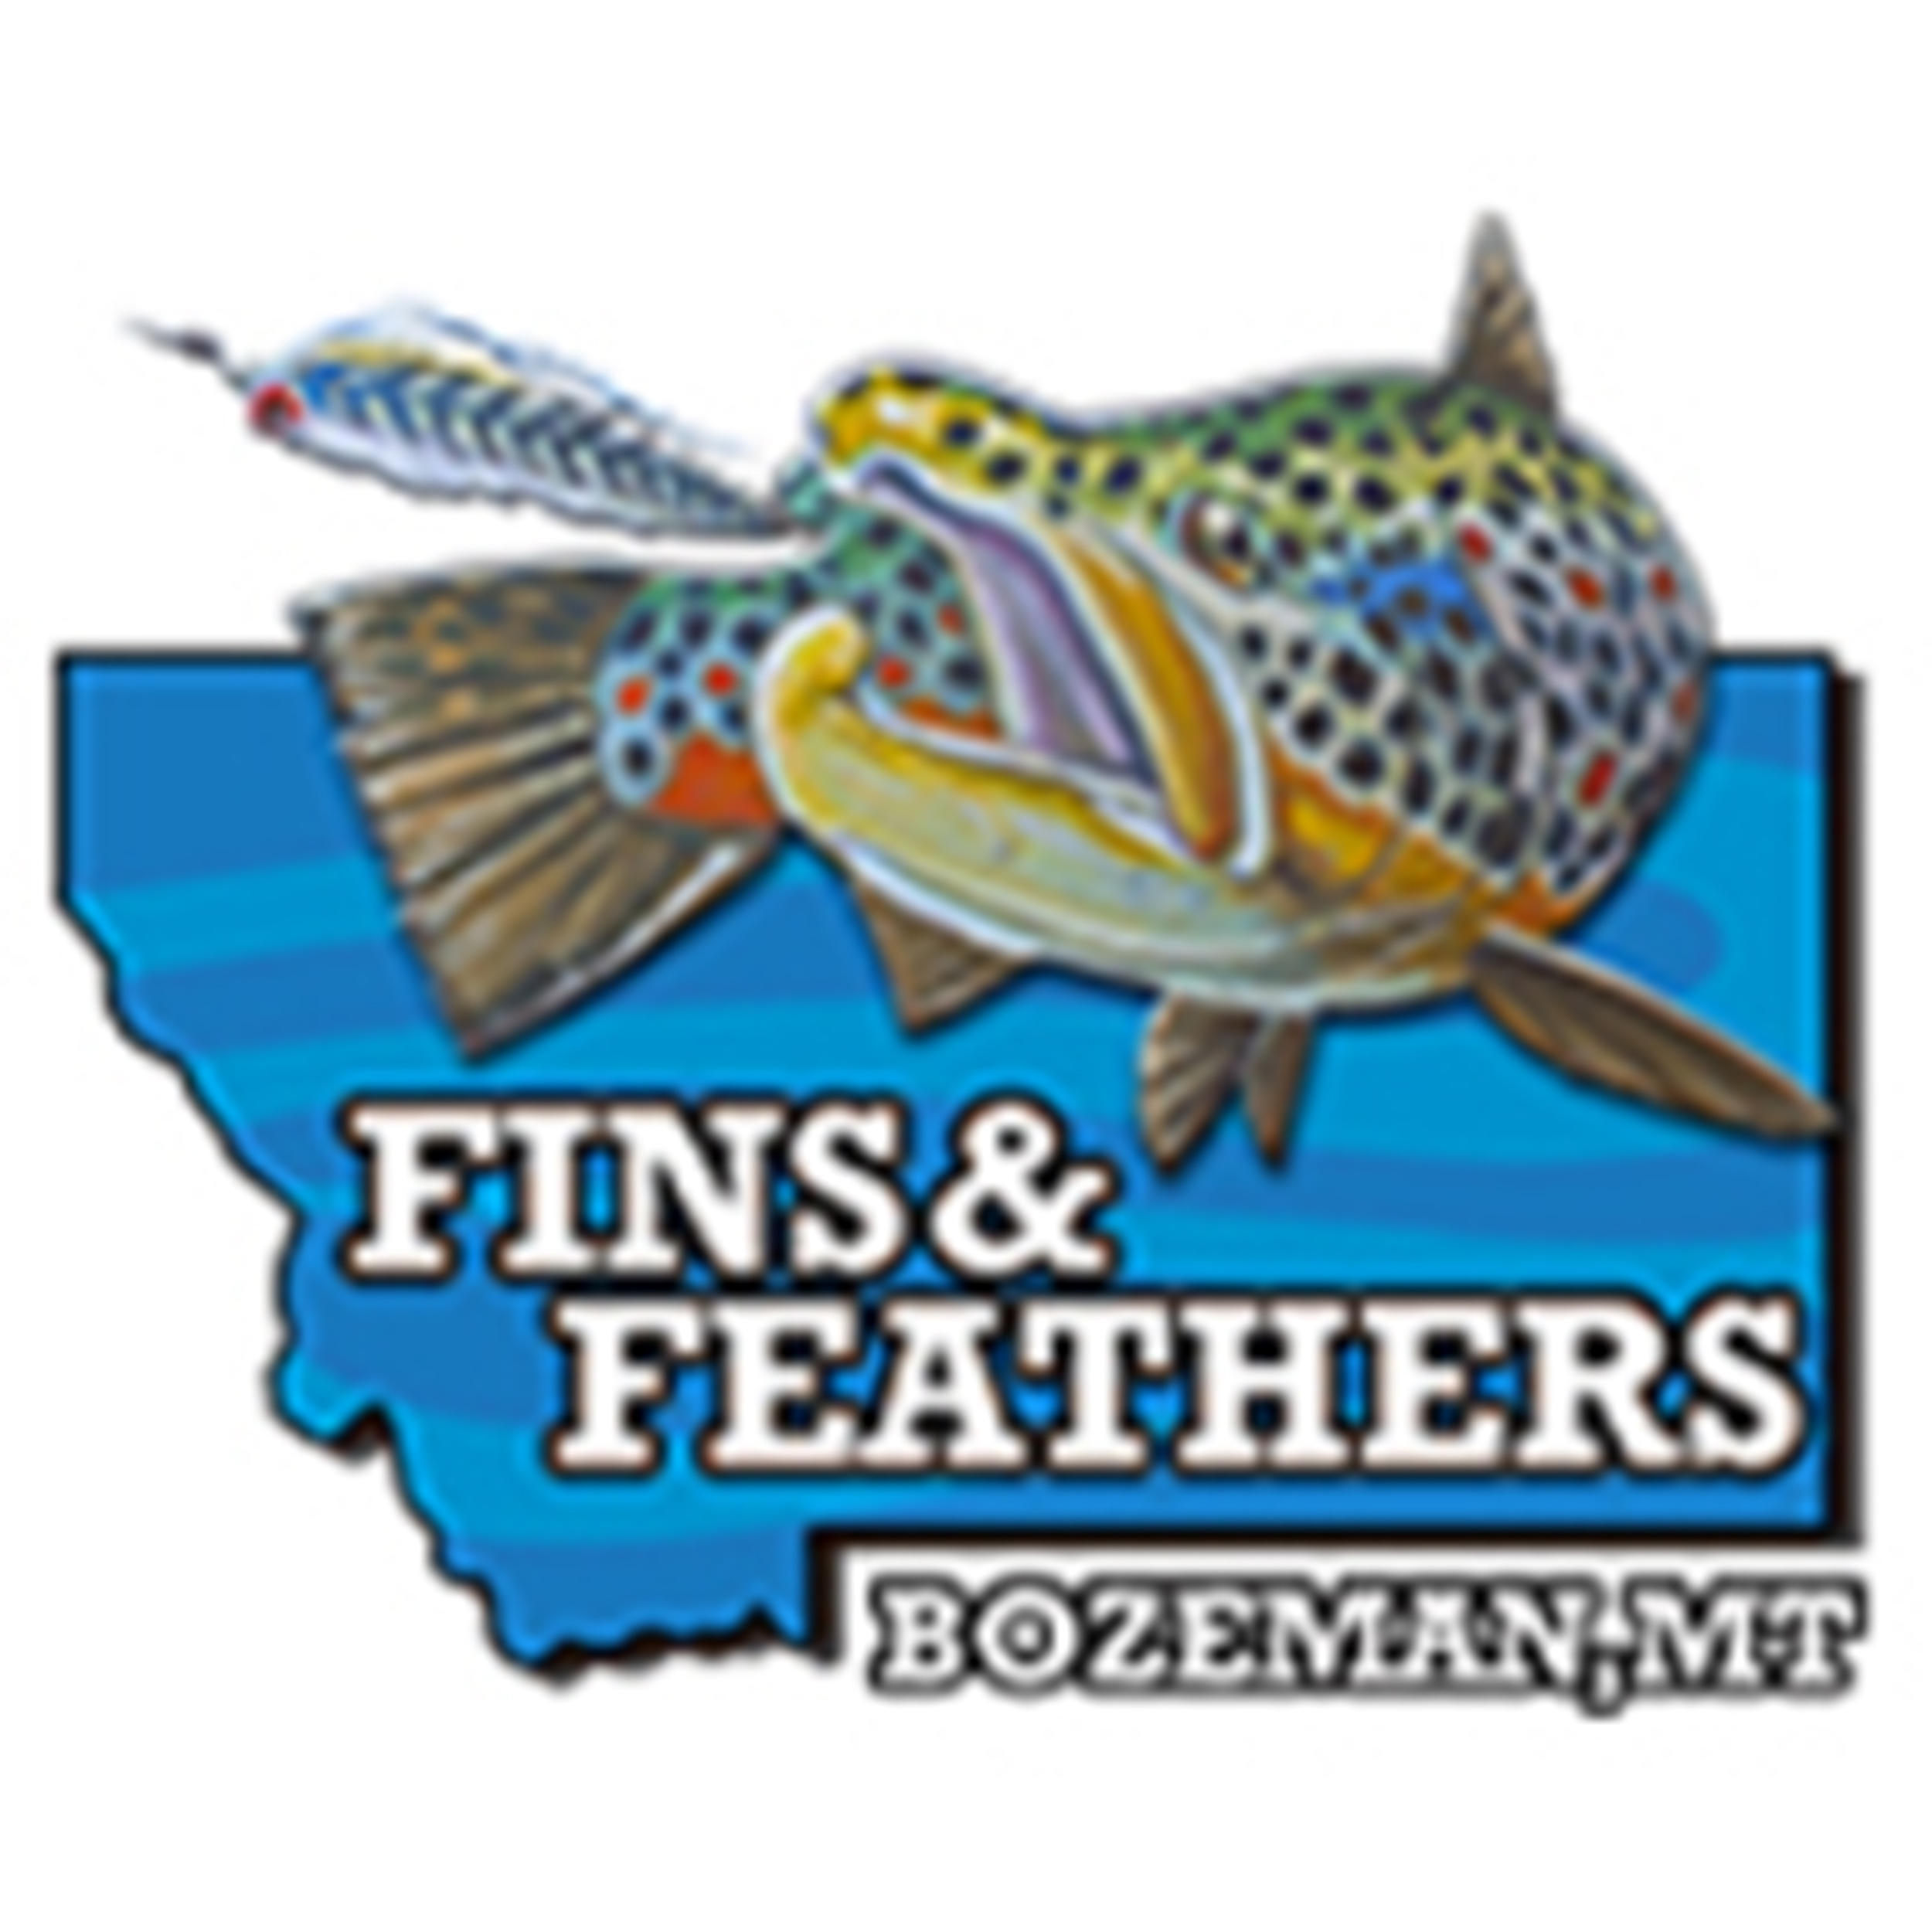 Fins & Feathers of Bozeman - Bozeman, MT - Fishing Tackle & Supplies